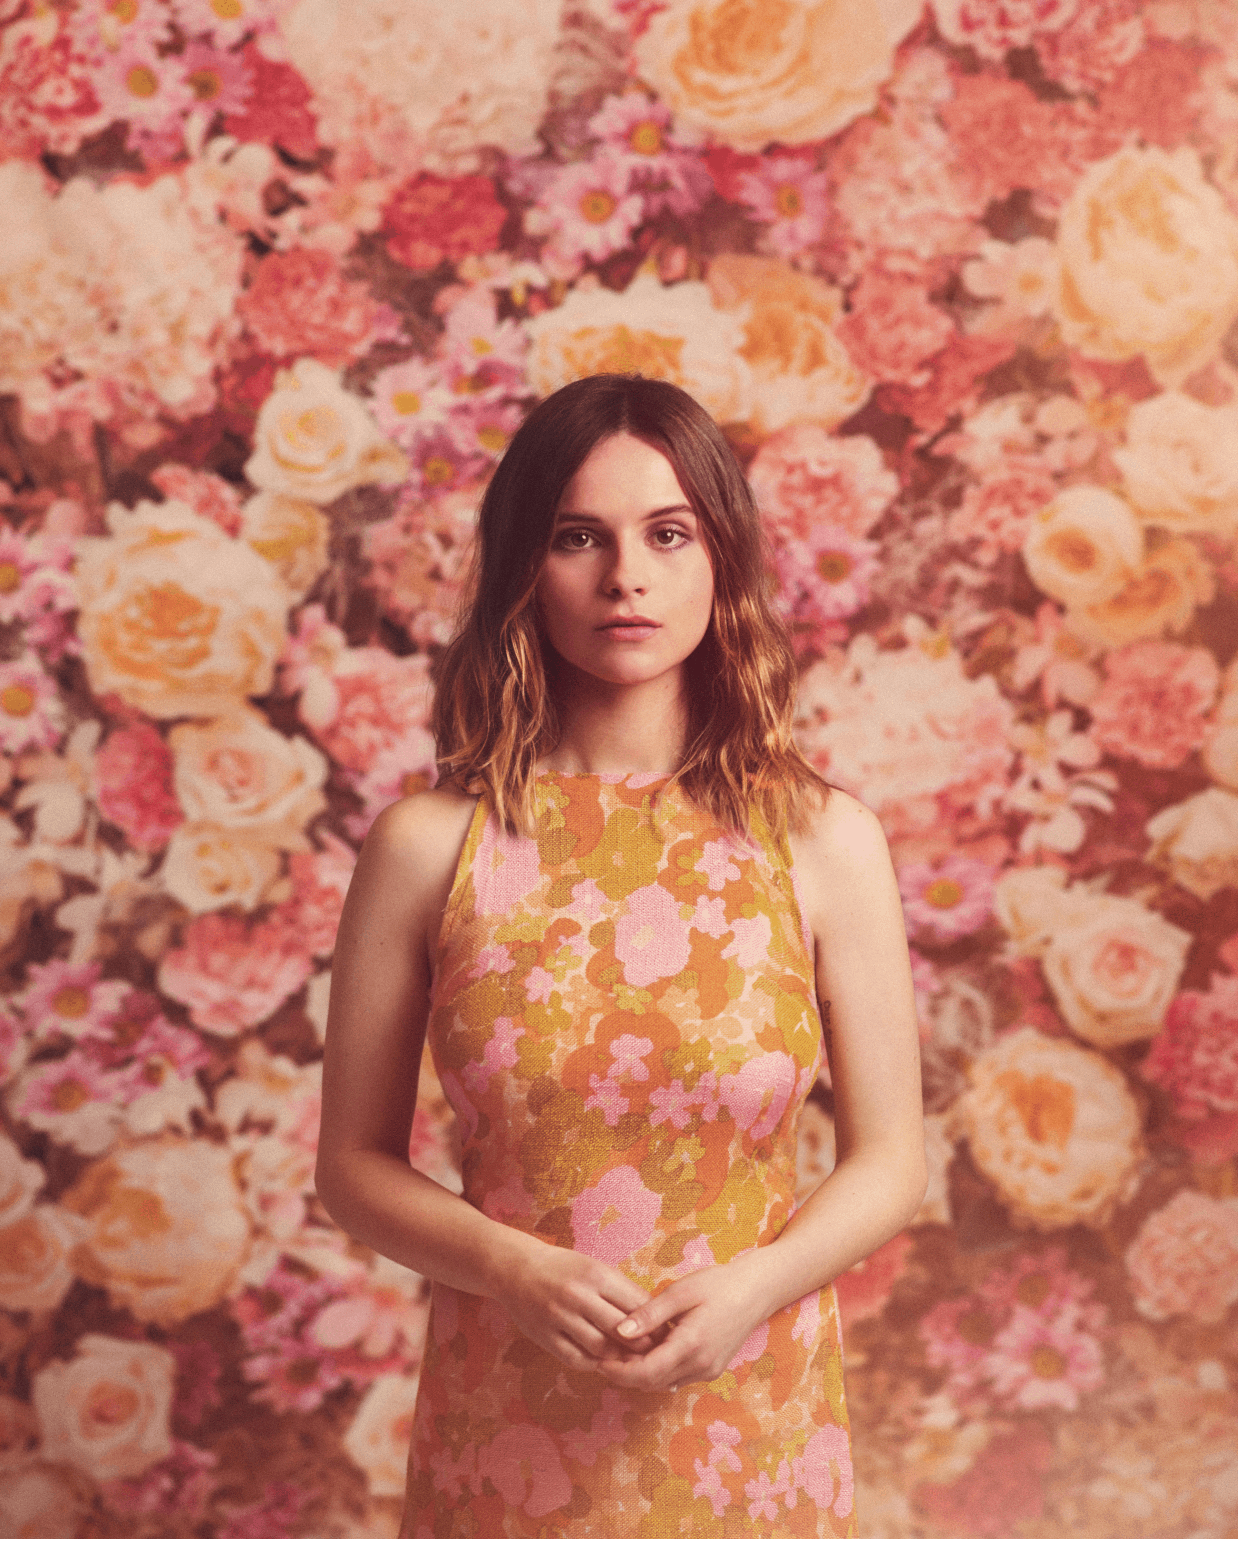 Gabrielle Aplin by Pip for Euphoria Magazine